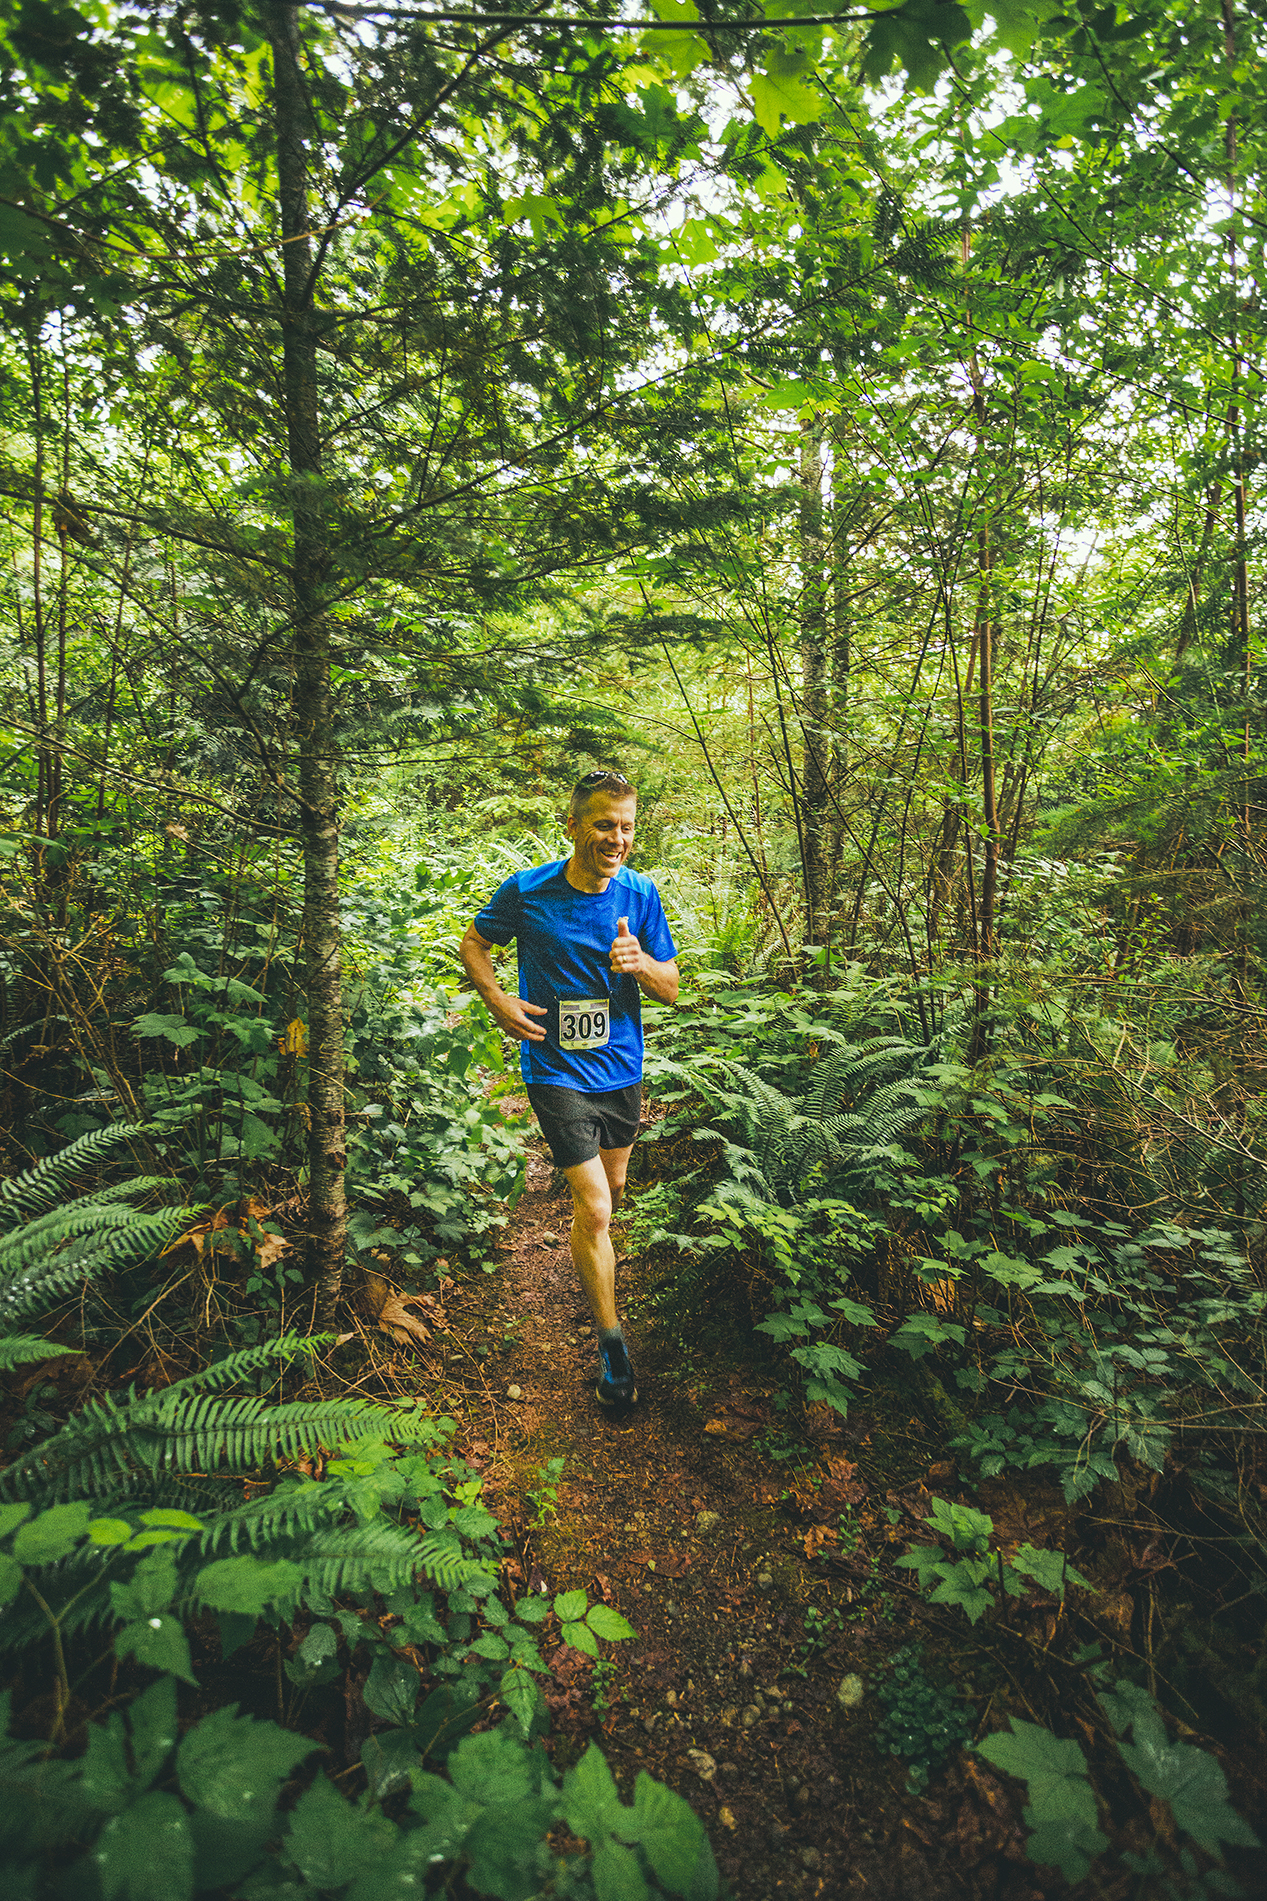 Fraser Valley Trail Races - Bear Mountain - IMG_3003 by Brice Ferre Studio - Vancouver Portrait Adventure and Athlete Photographer.jpg